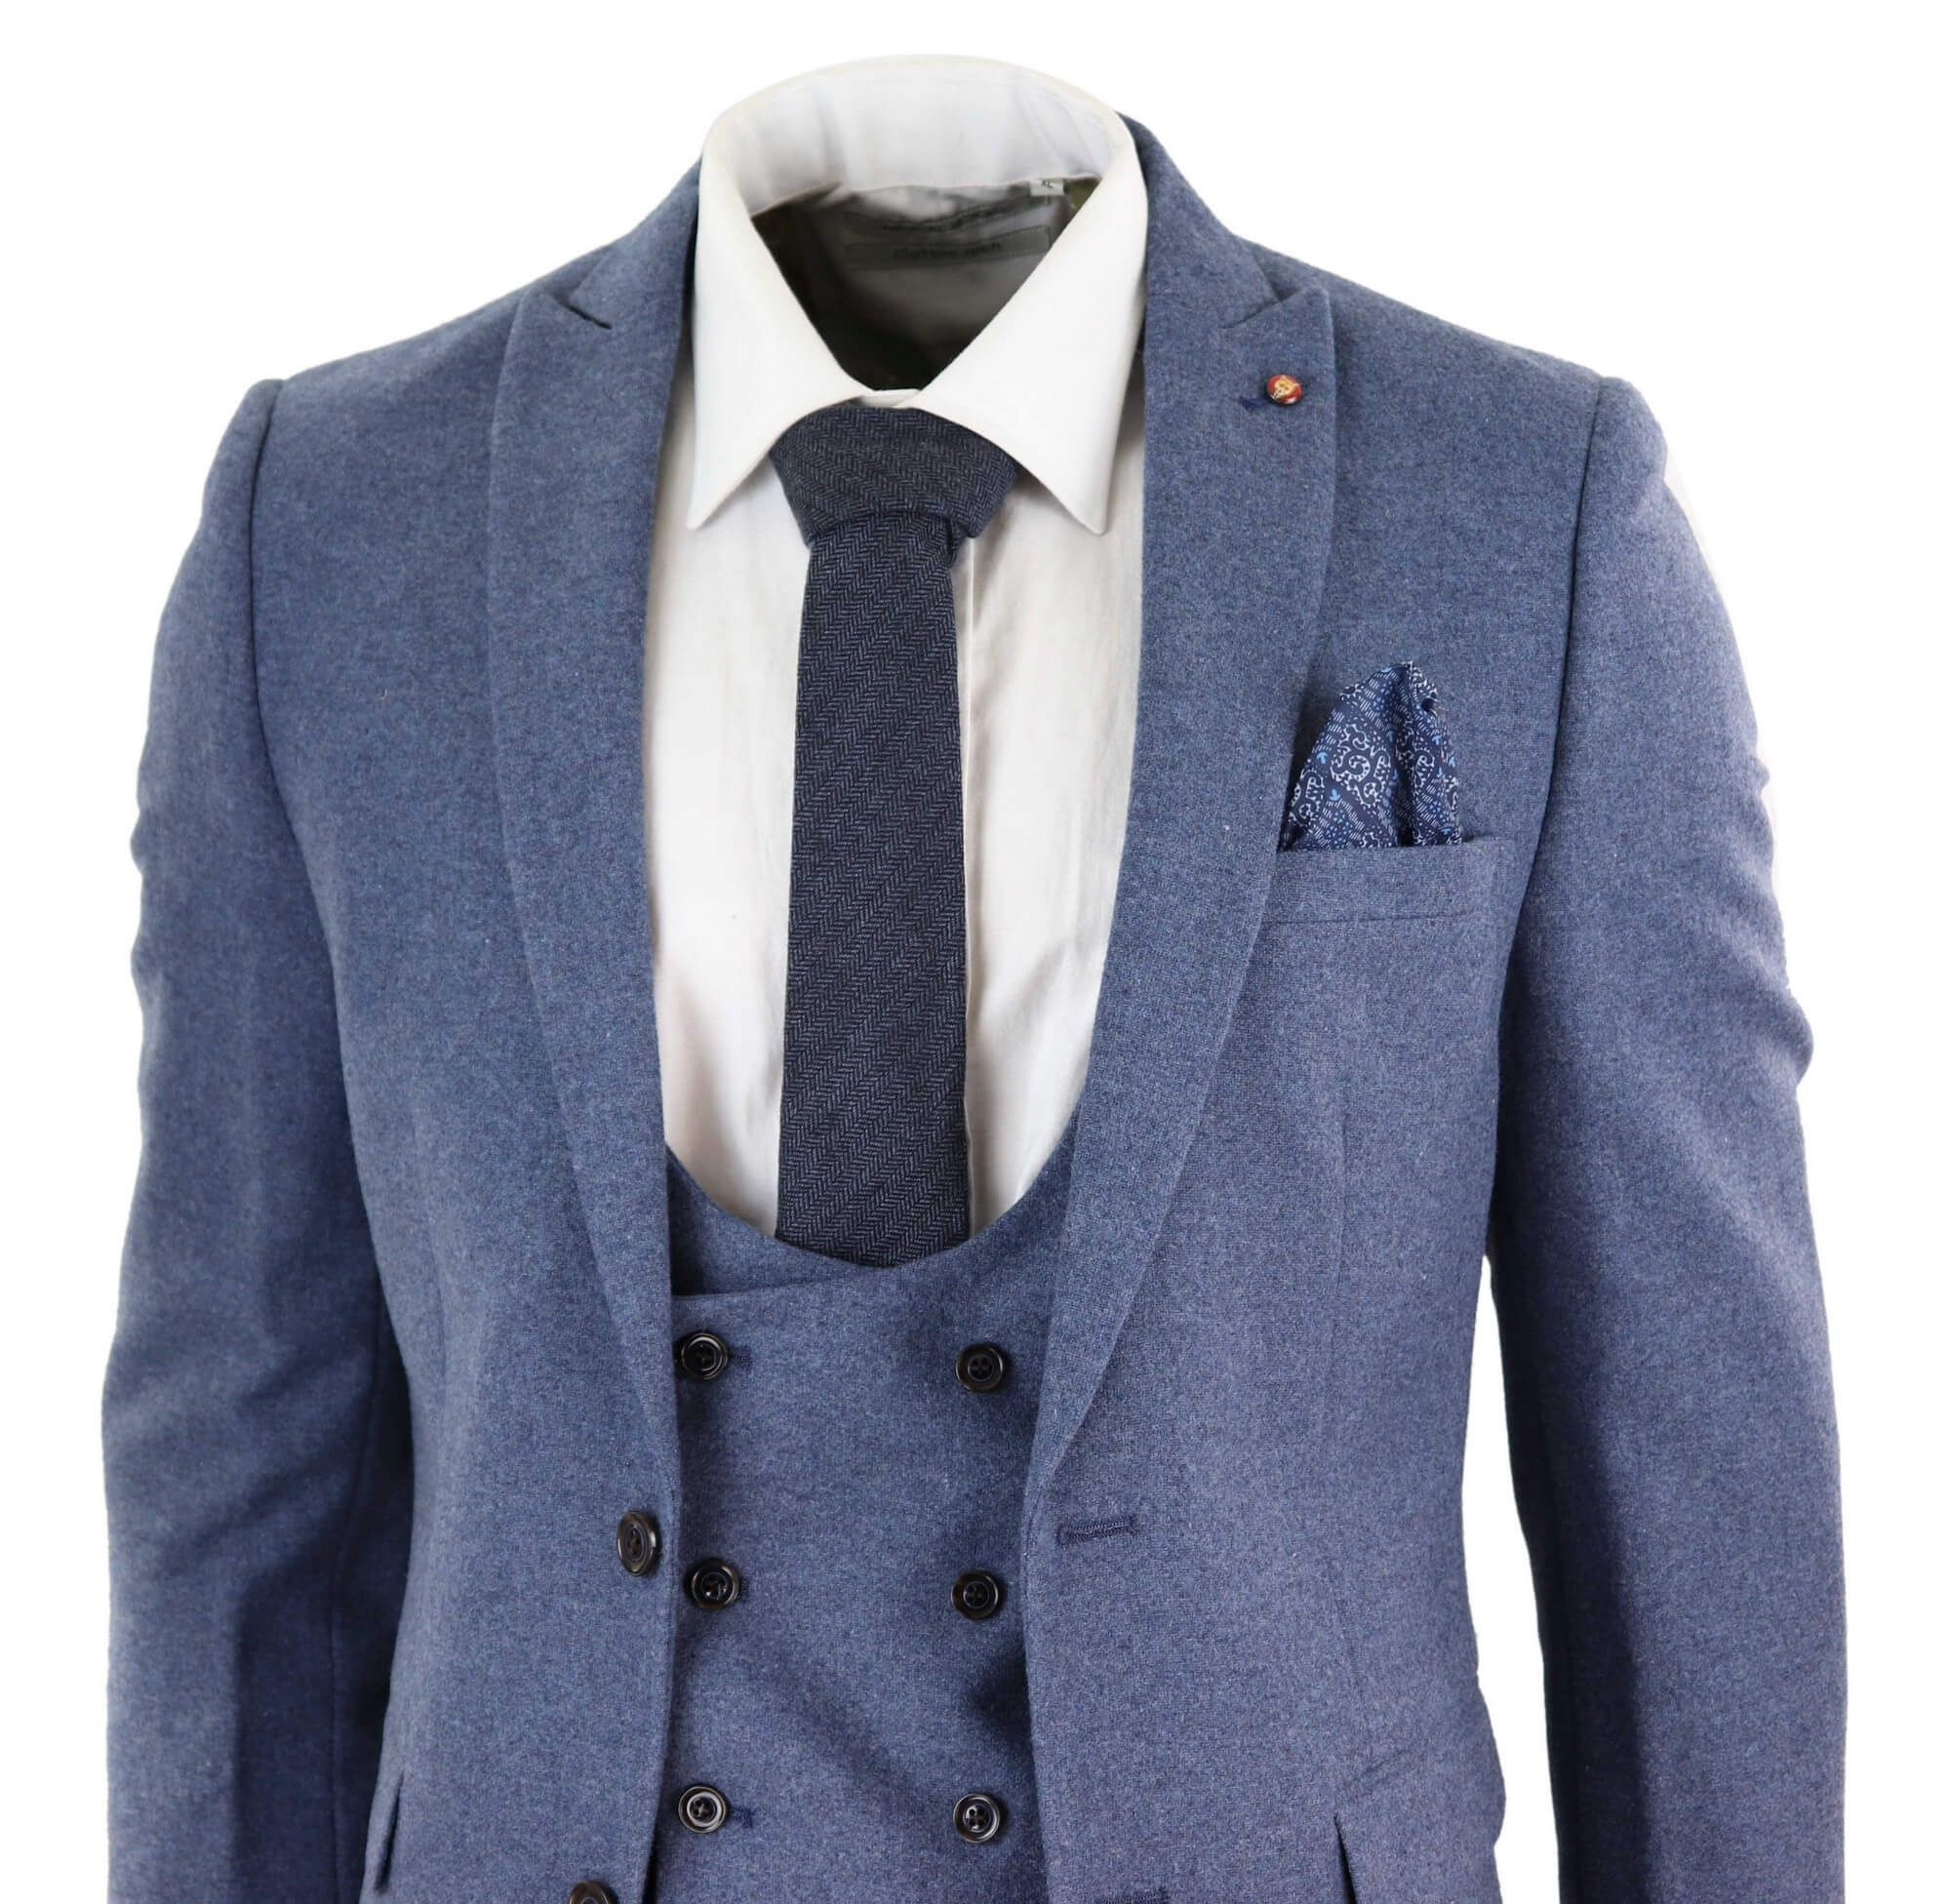 HARRY BROWN Mens Blazer Tailored Fit Wool Blend